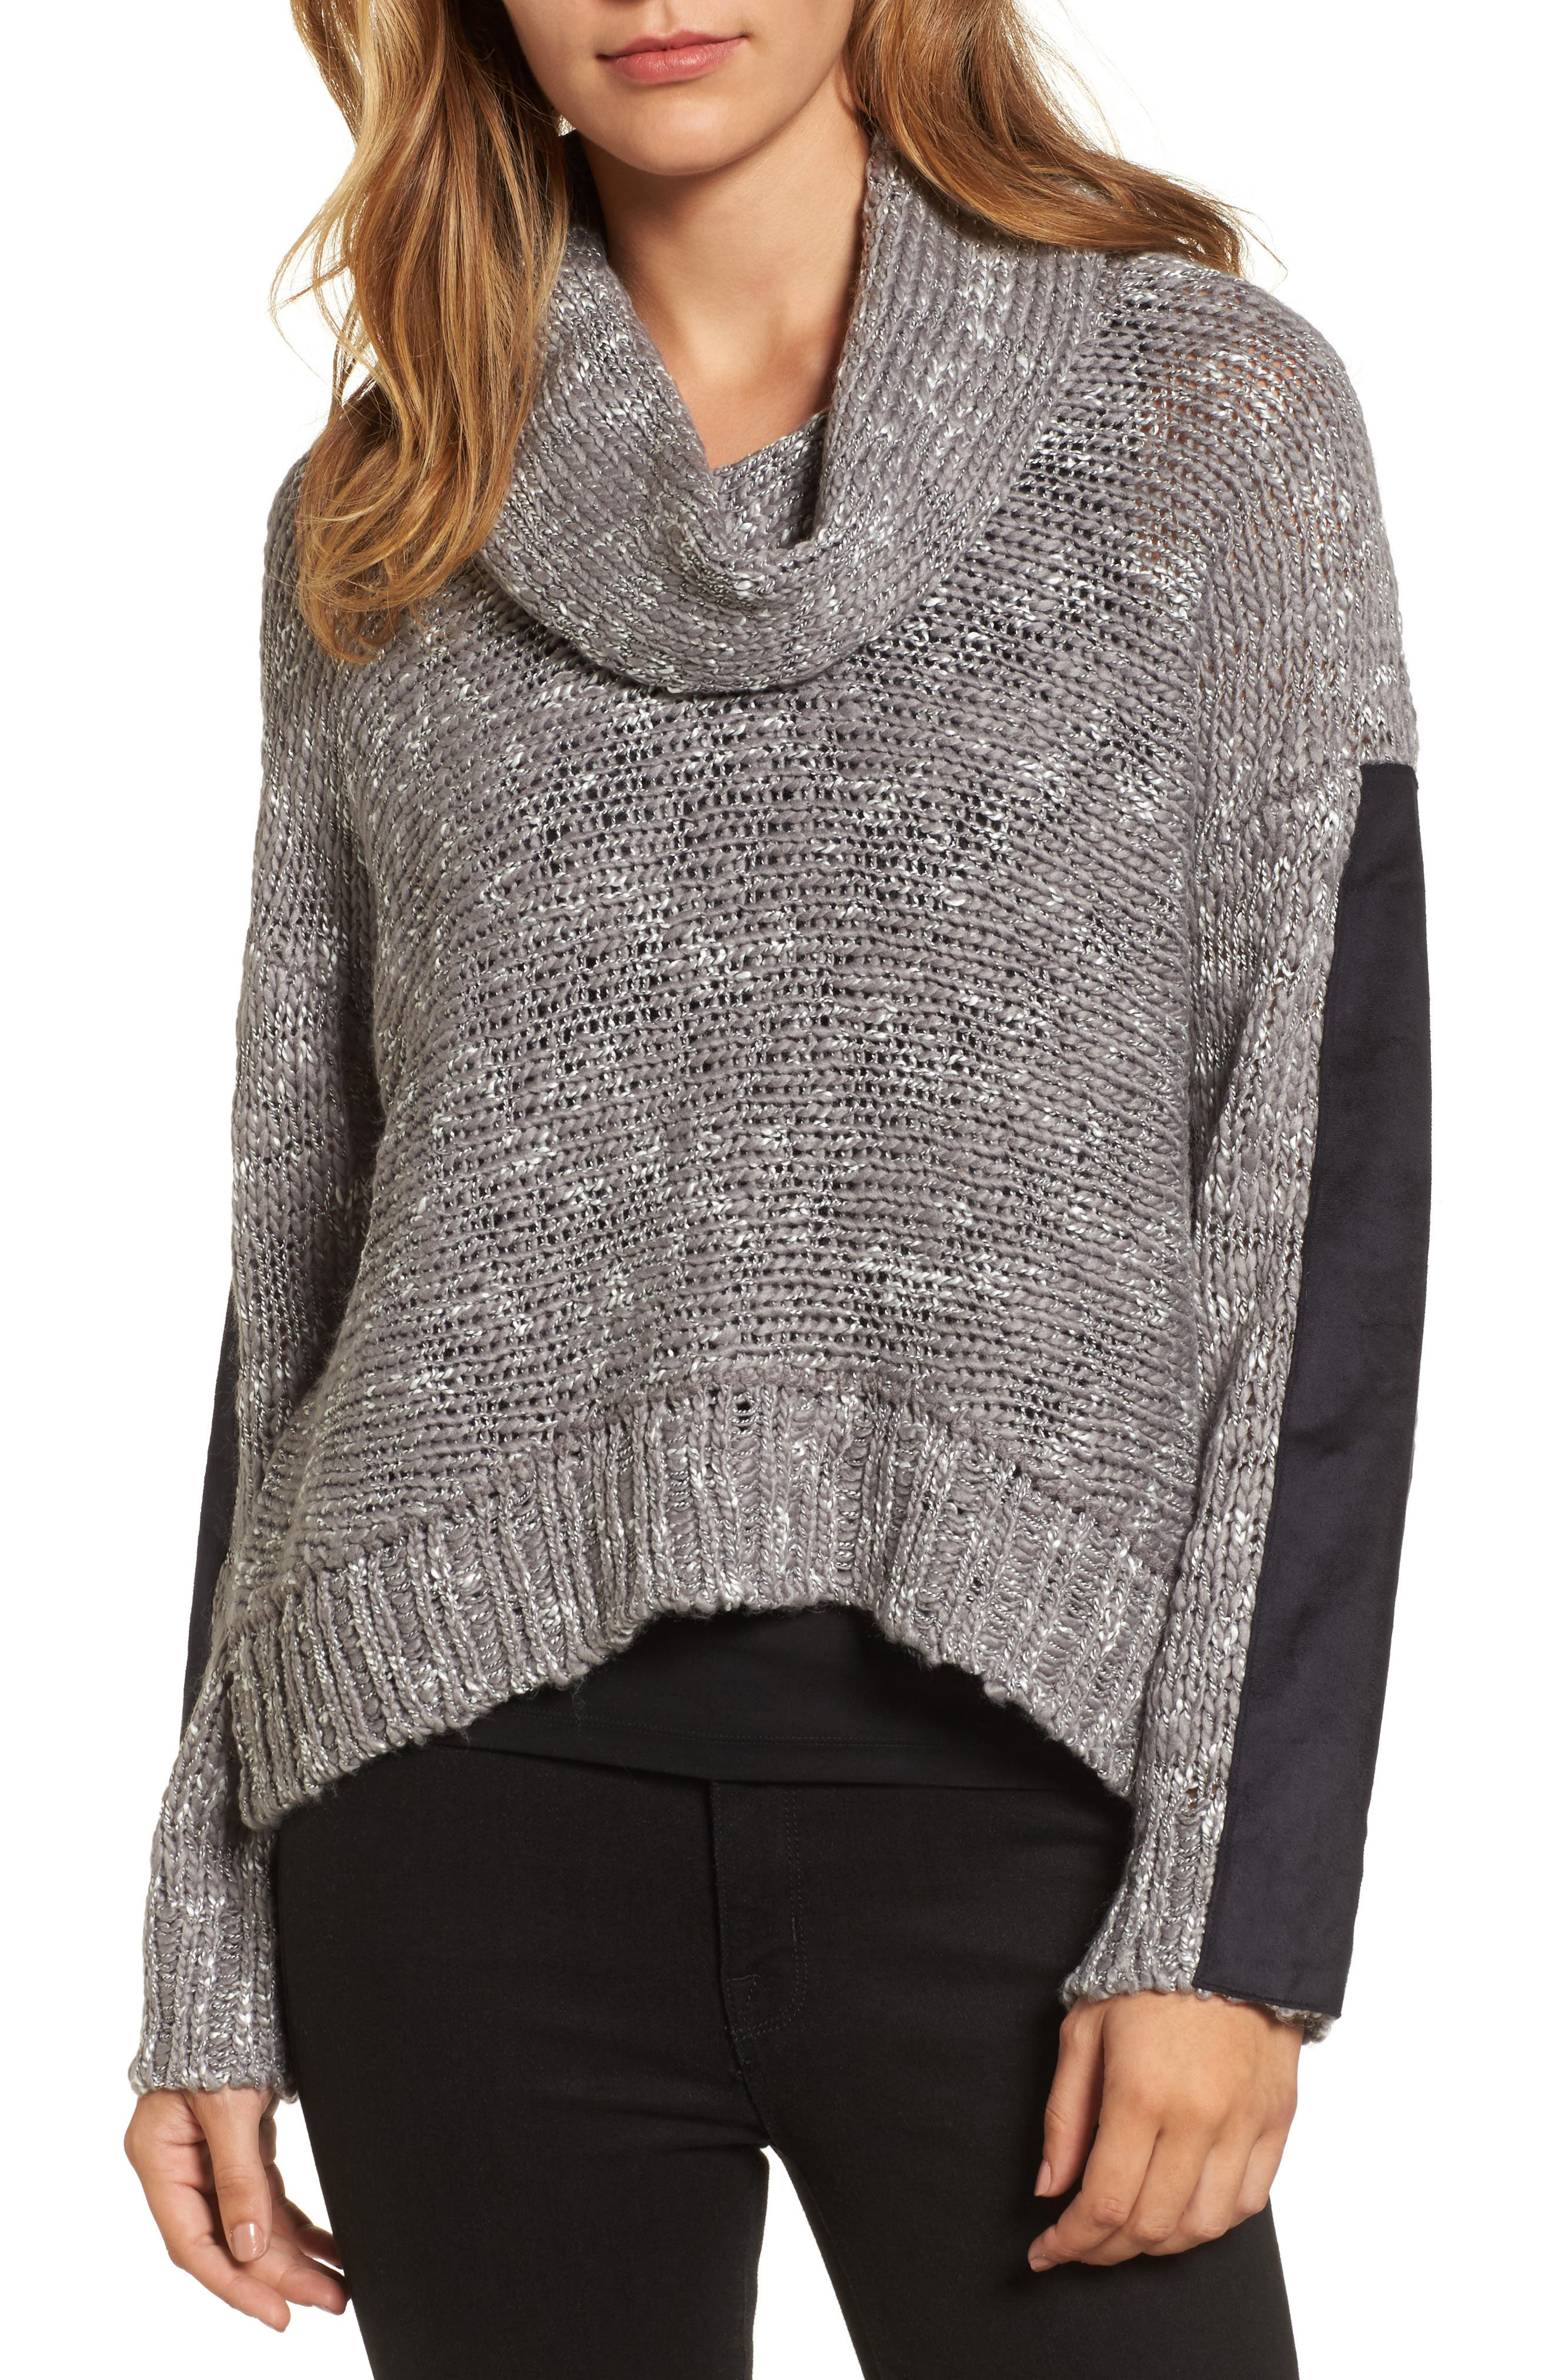 Main Image - Press Cowl Neck Patch Sleeve Sweater